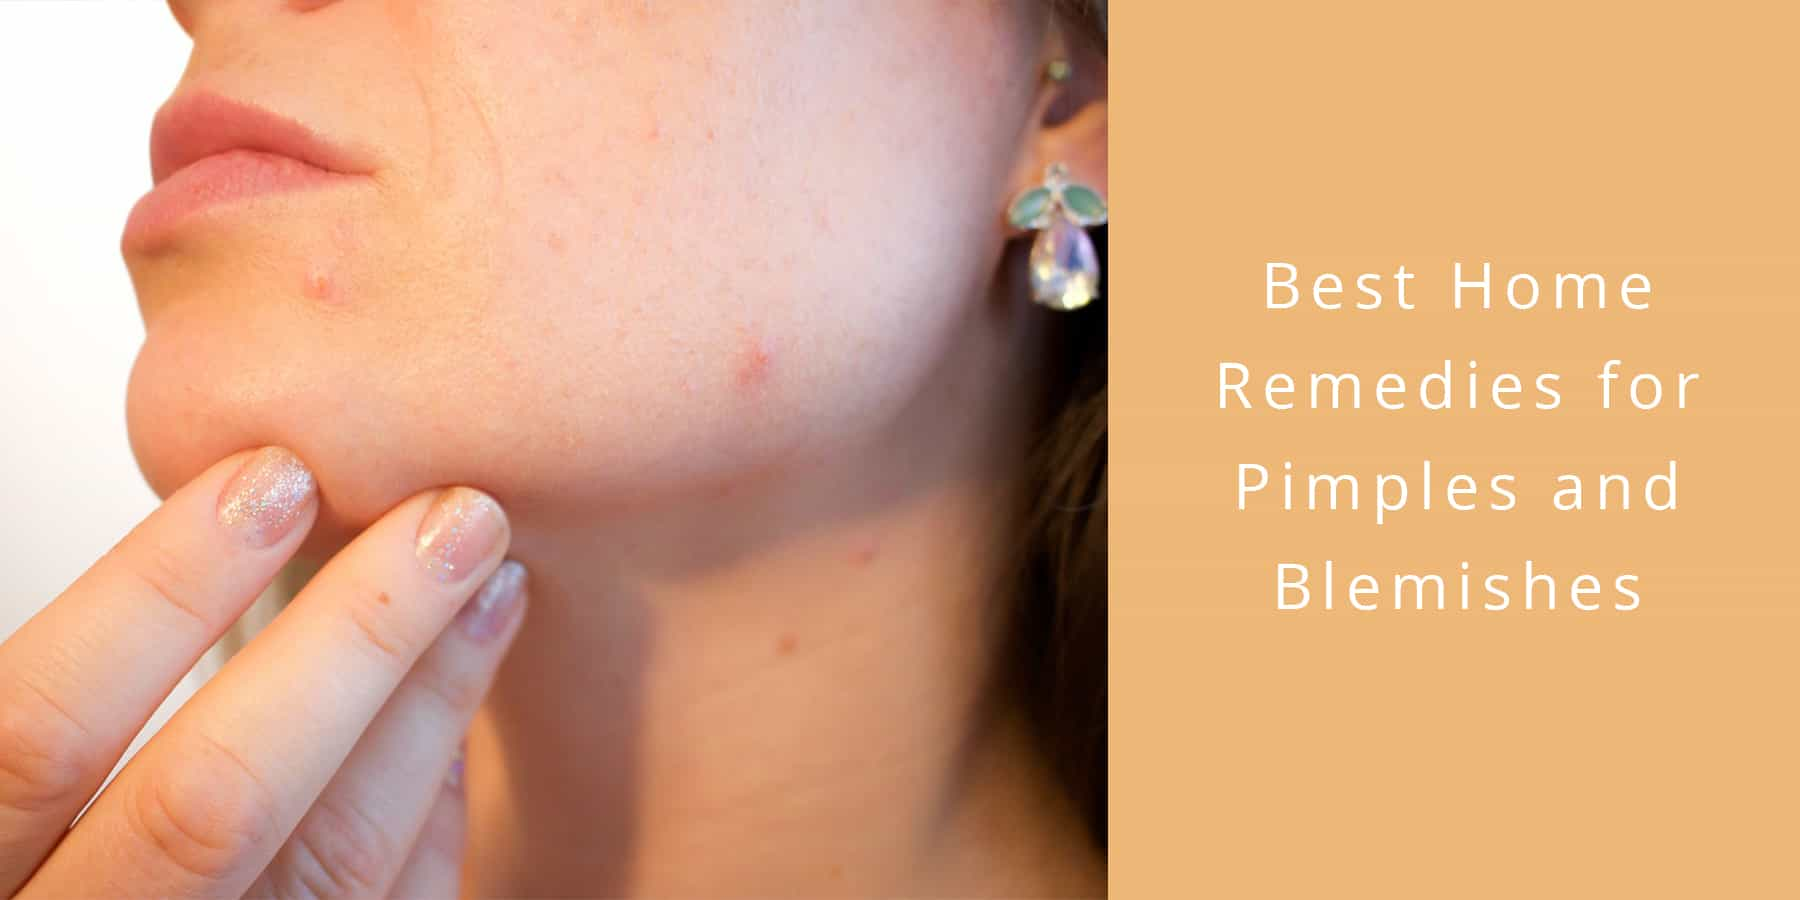 what is the best remedy for pimples